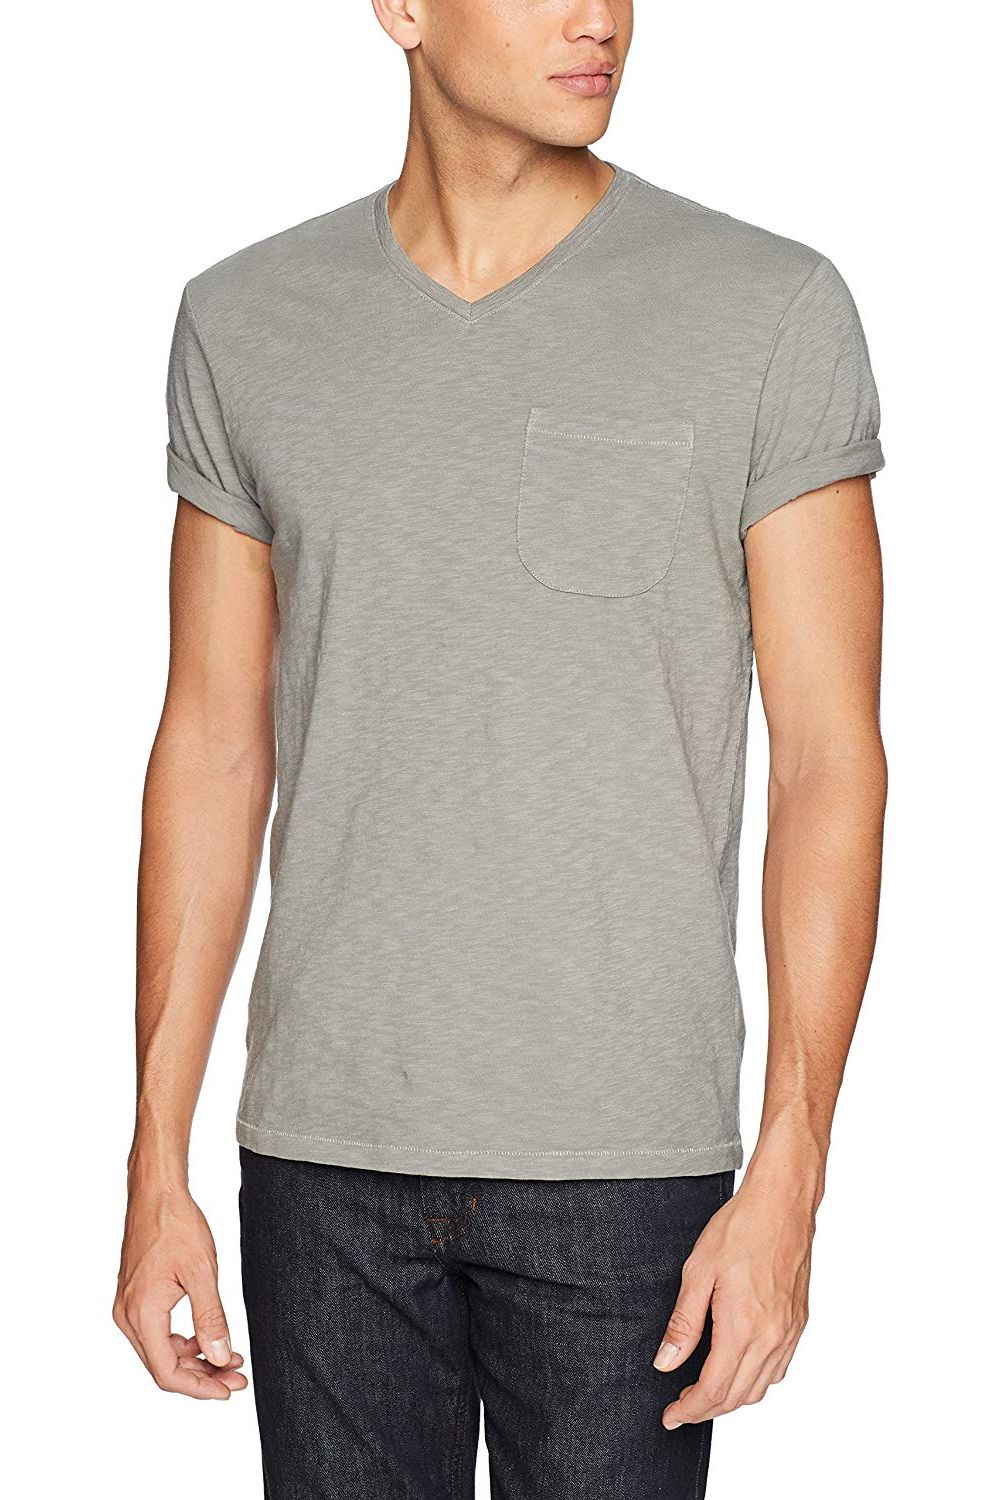 10a814cdd Amazon Brand - Goodthreads Men s Lightweight Slub V-Neck Pocket T-Shirt at  Amazon